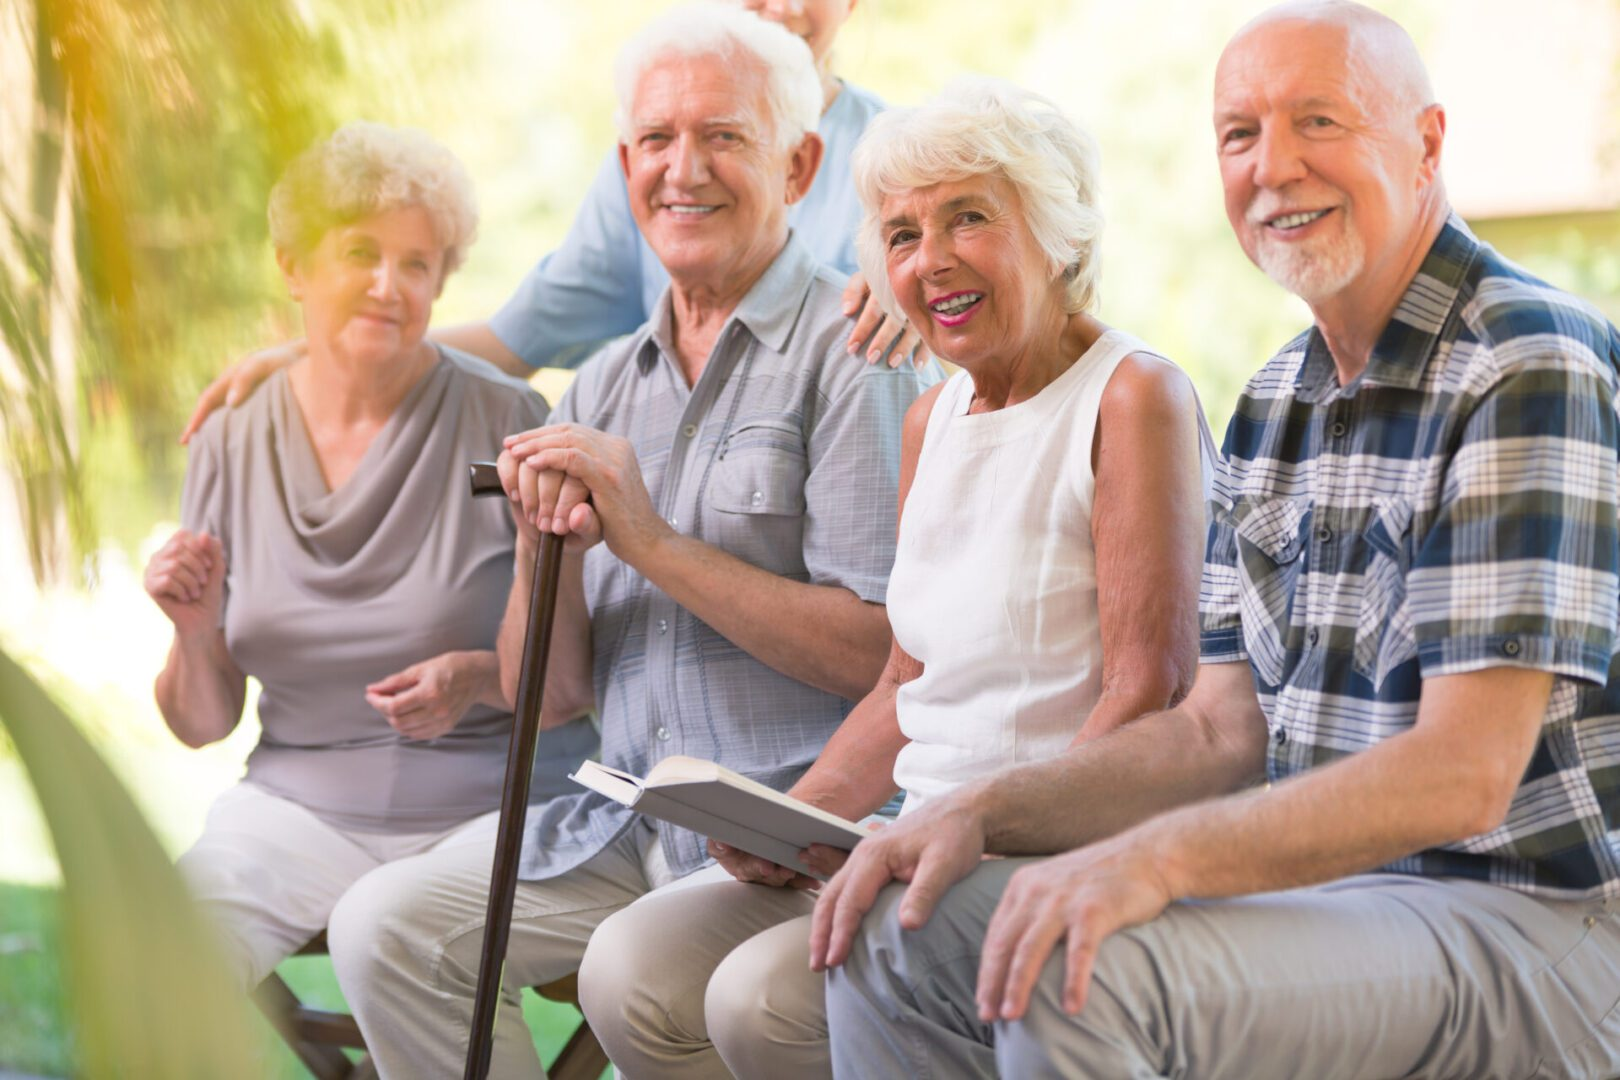 Smiling elderly people spending time together at patio of nursing house